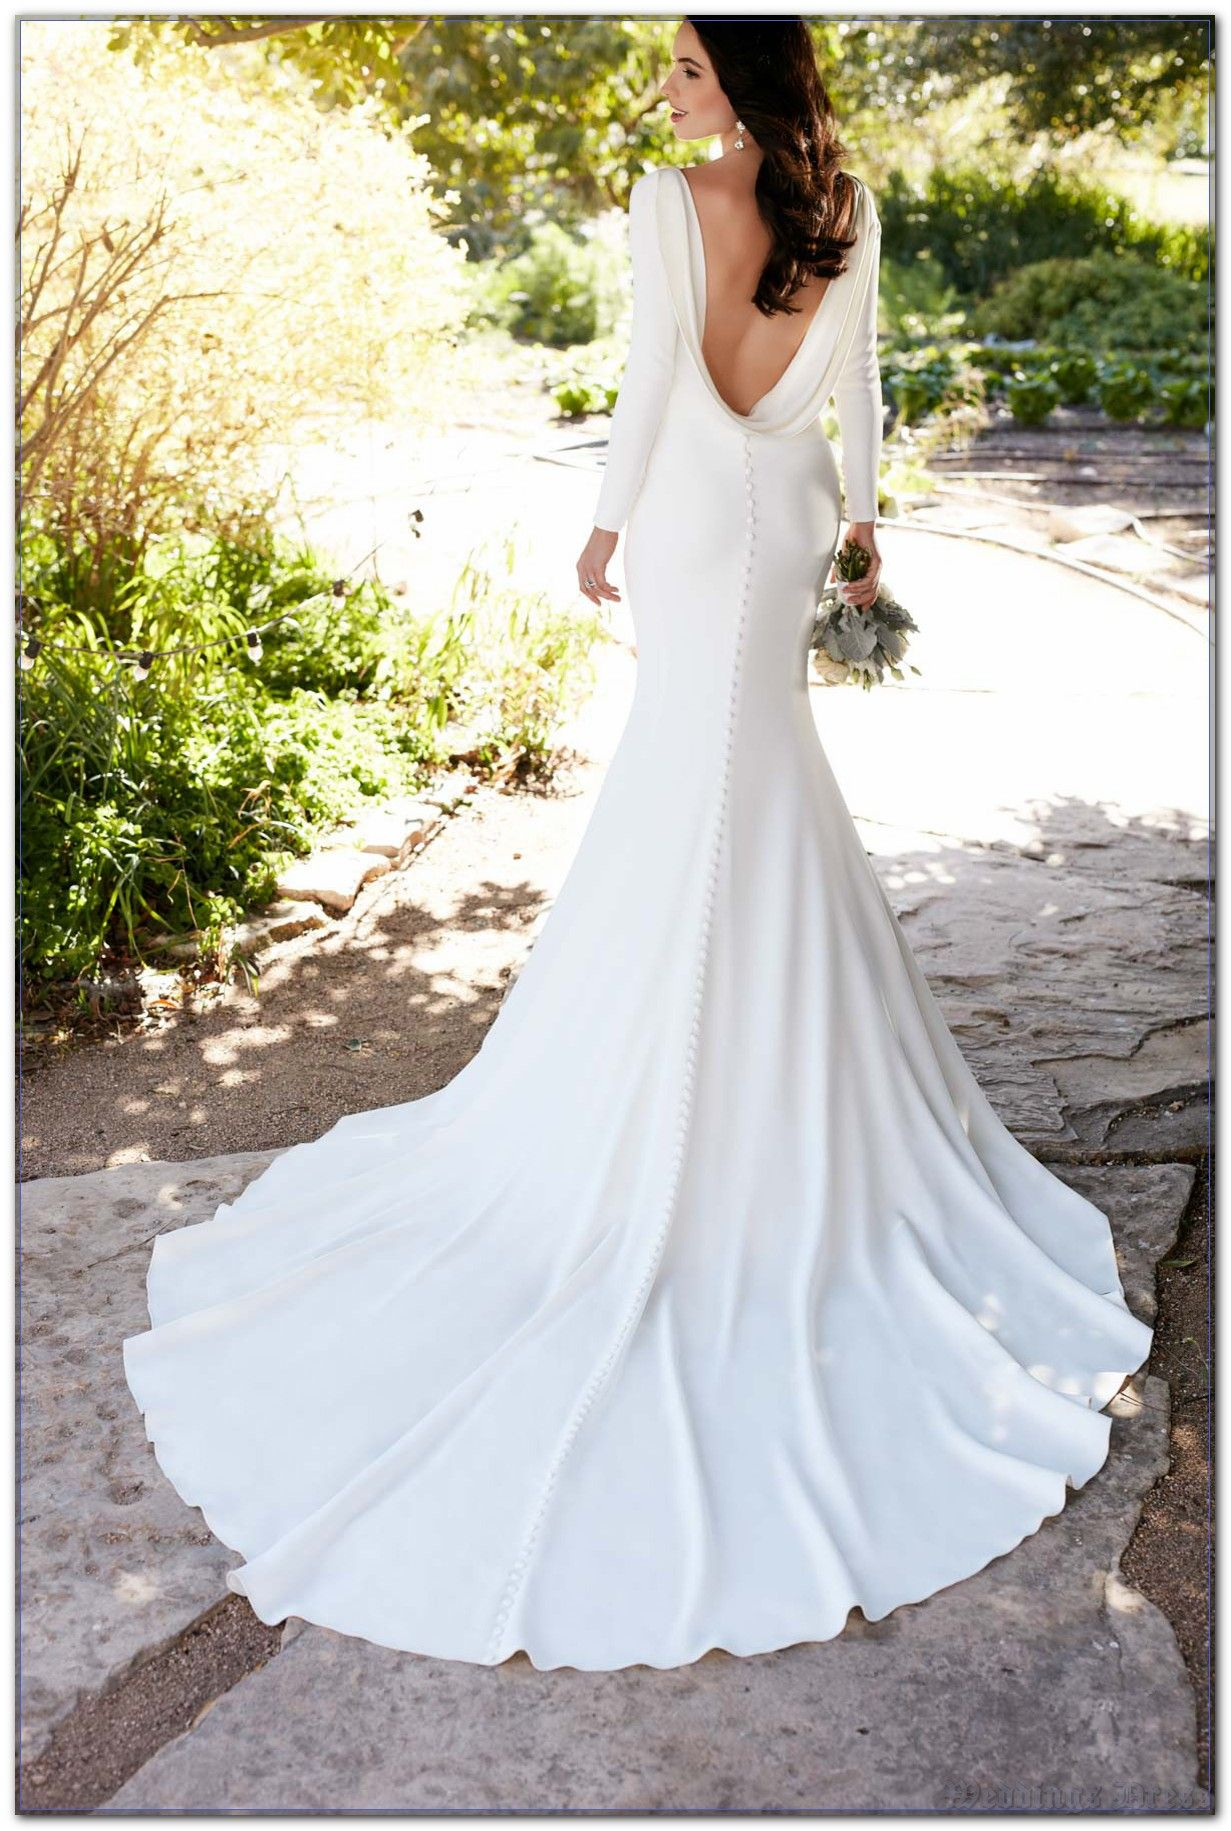 Weddings Dress Is Bound To Make An Impact In Your Business